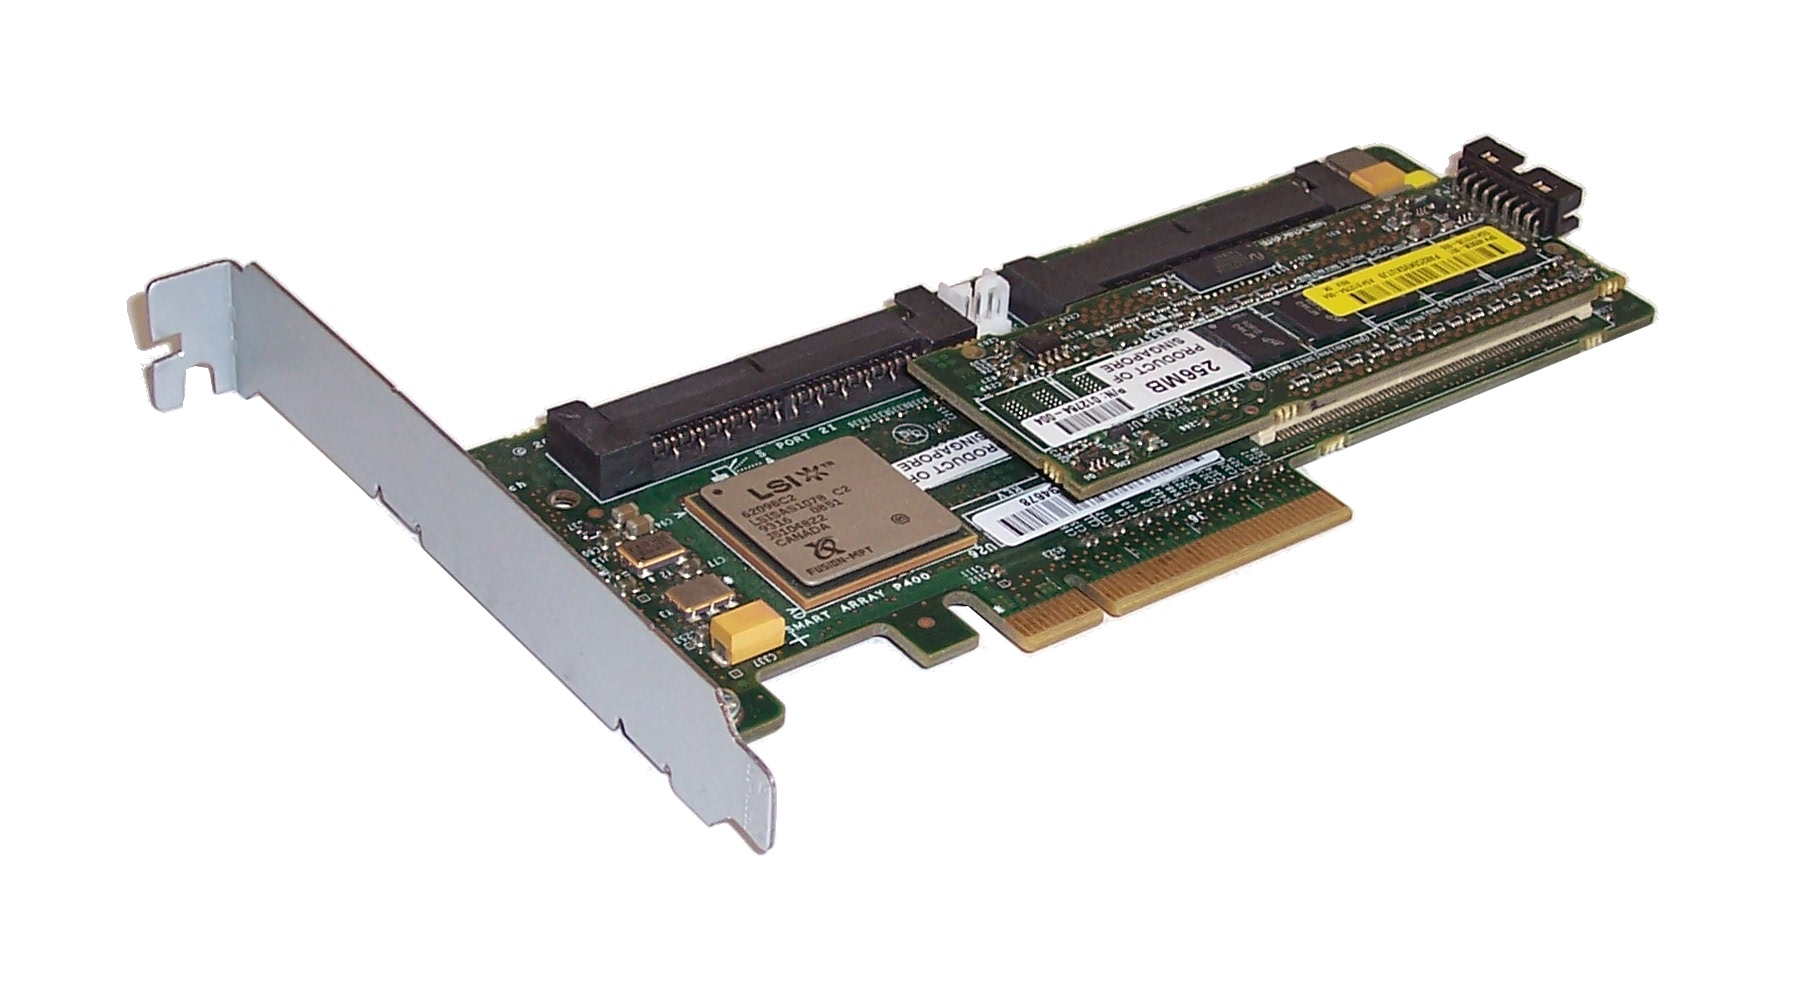 hp 504023 001 proliant p400 smart array raid controller card with 256mb memory. Black Bedroom Furniture Sets. Home Design Ideas